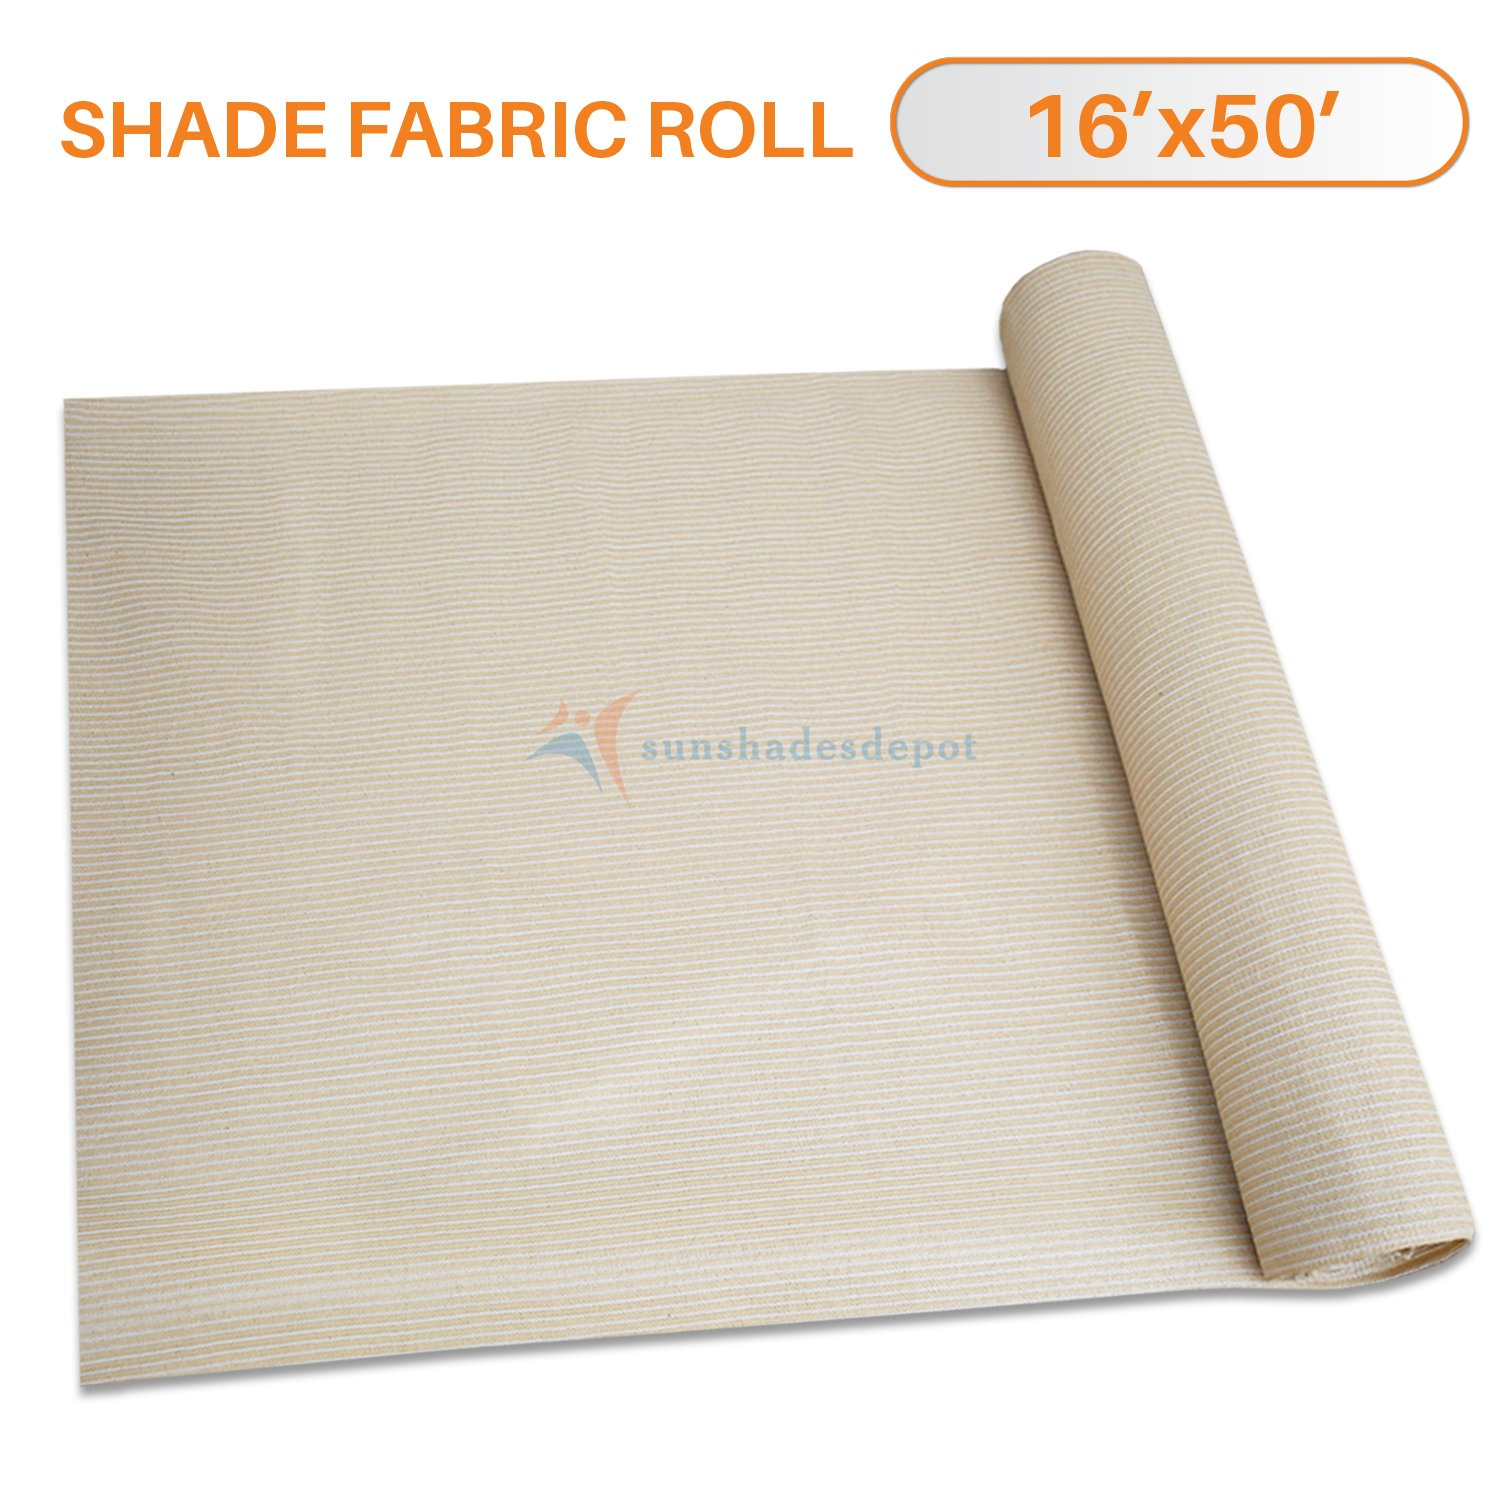 Sunshades Depot 16' x 50' Shade Cloth 180 GSM HDPE Beige Fabric Roll Up to 95% Blockage UV Resistant Mesh Net